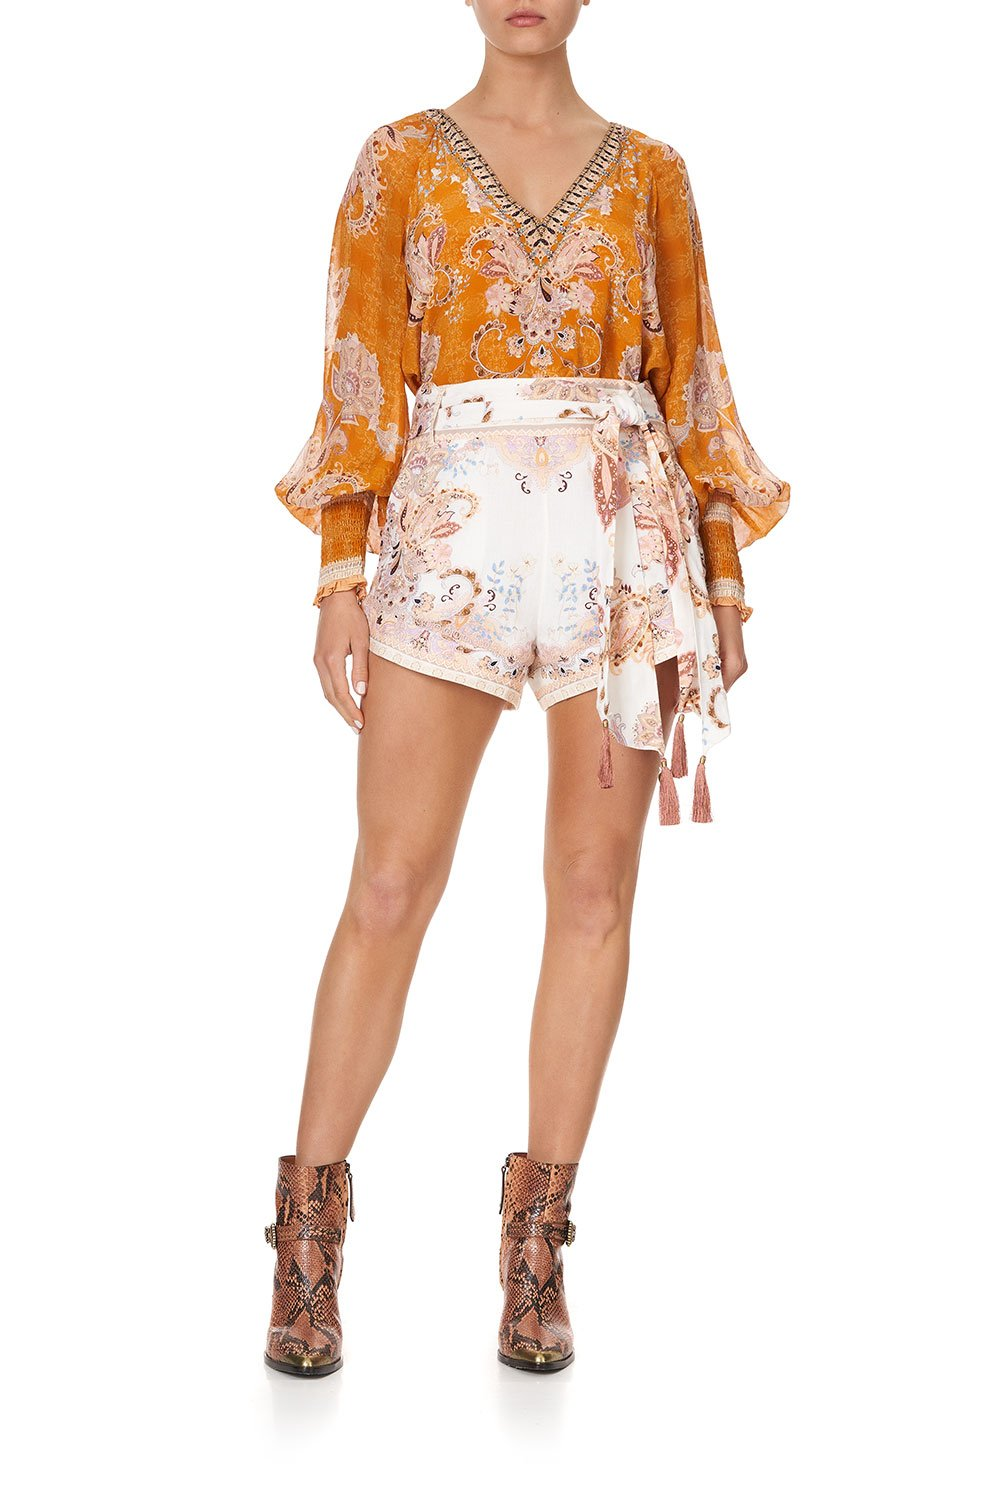 TIE DETAIL HIGH CUT SHORTS MARRAKESH MAIDEN